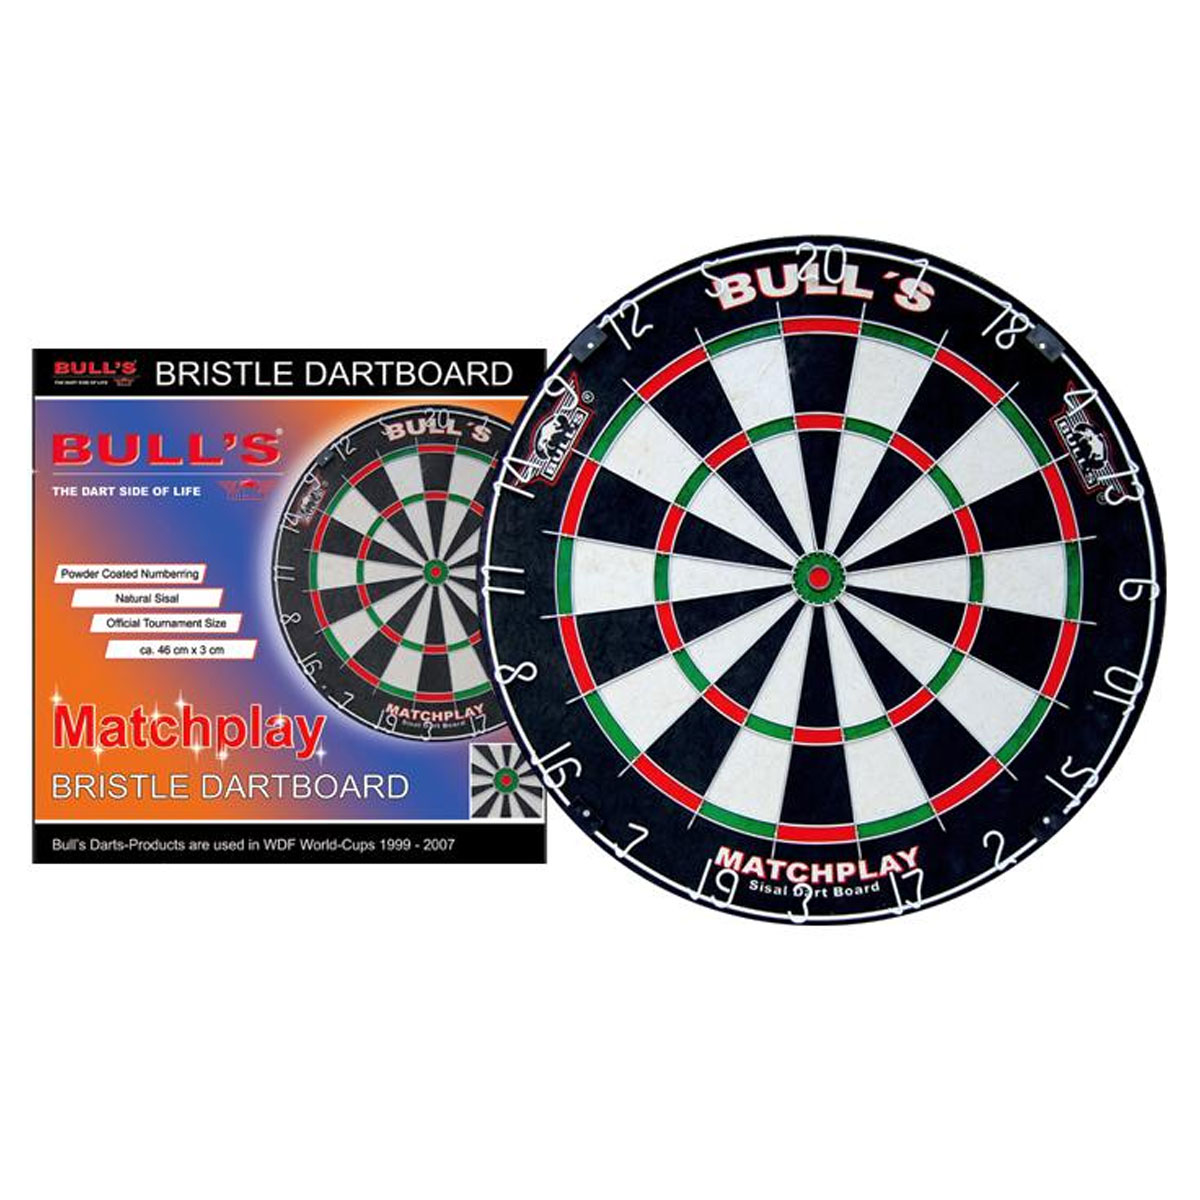 Мишень для дартс Bull's  Matchplay Bristle Board , 46 см х 3 см - Дартс